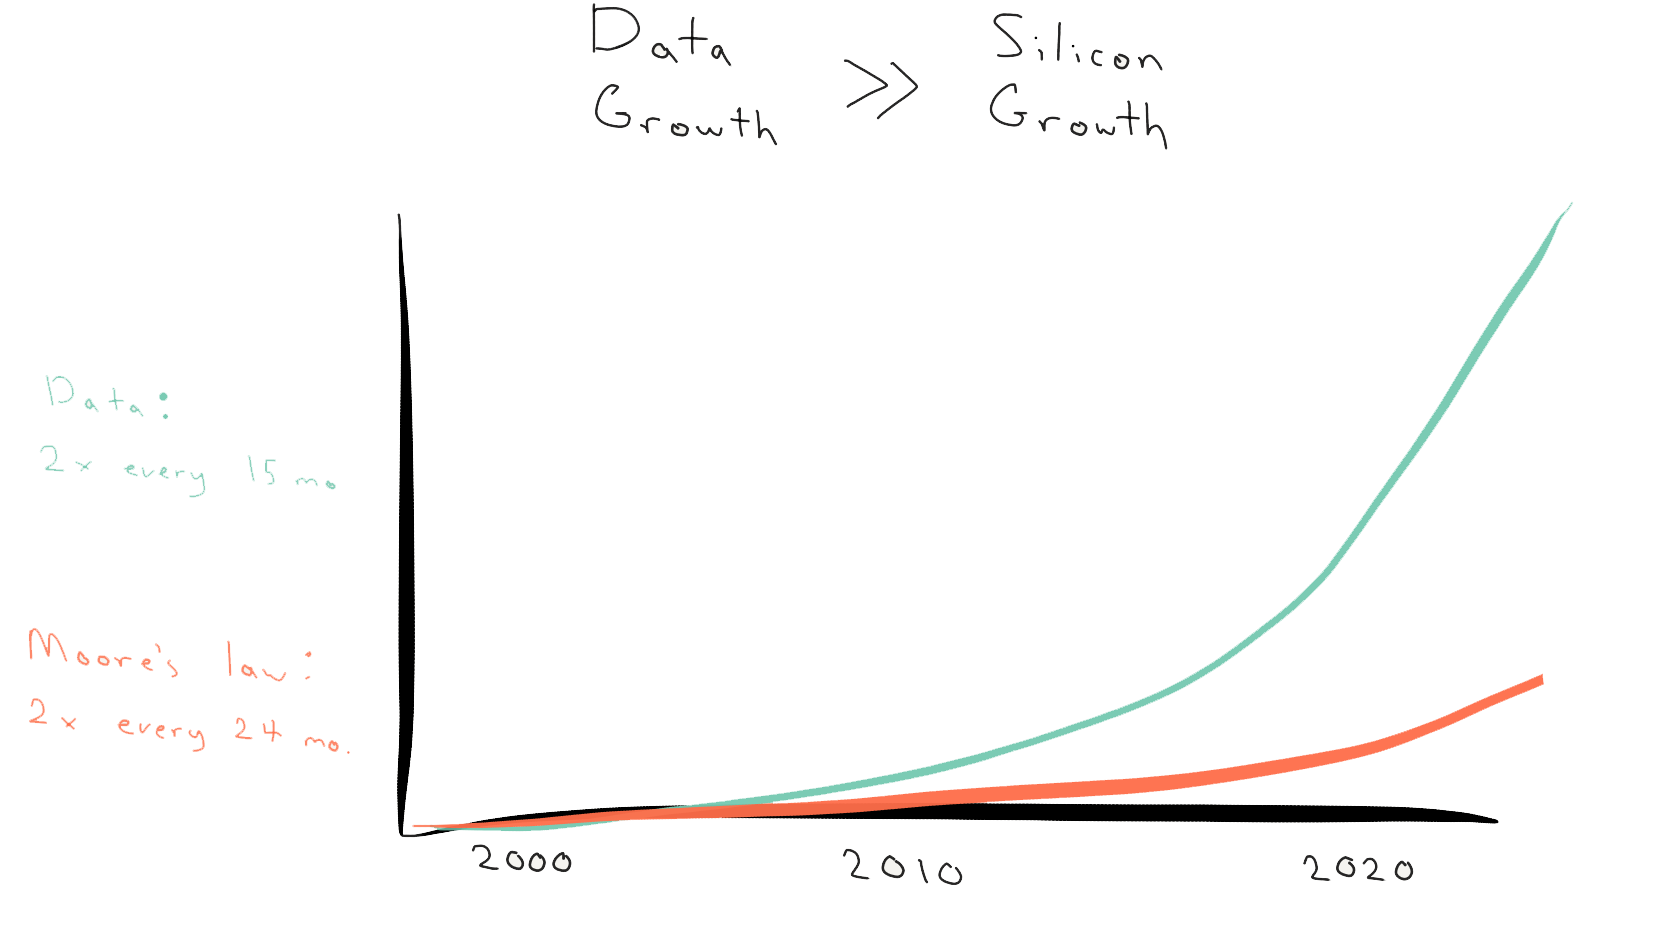 Data growth vs moores law